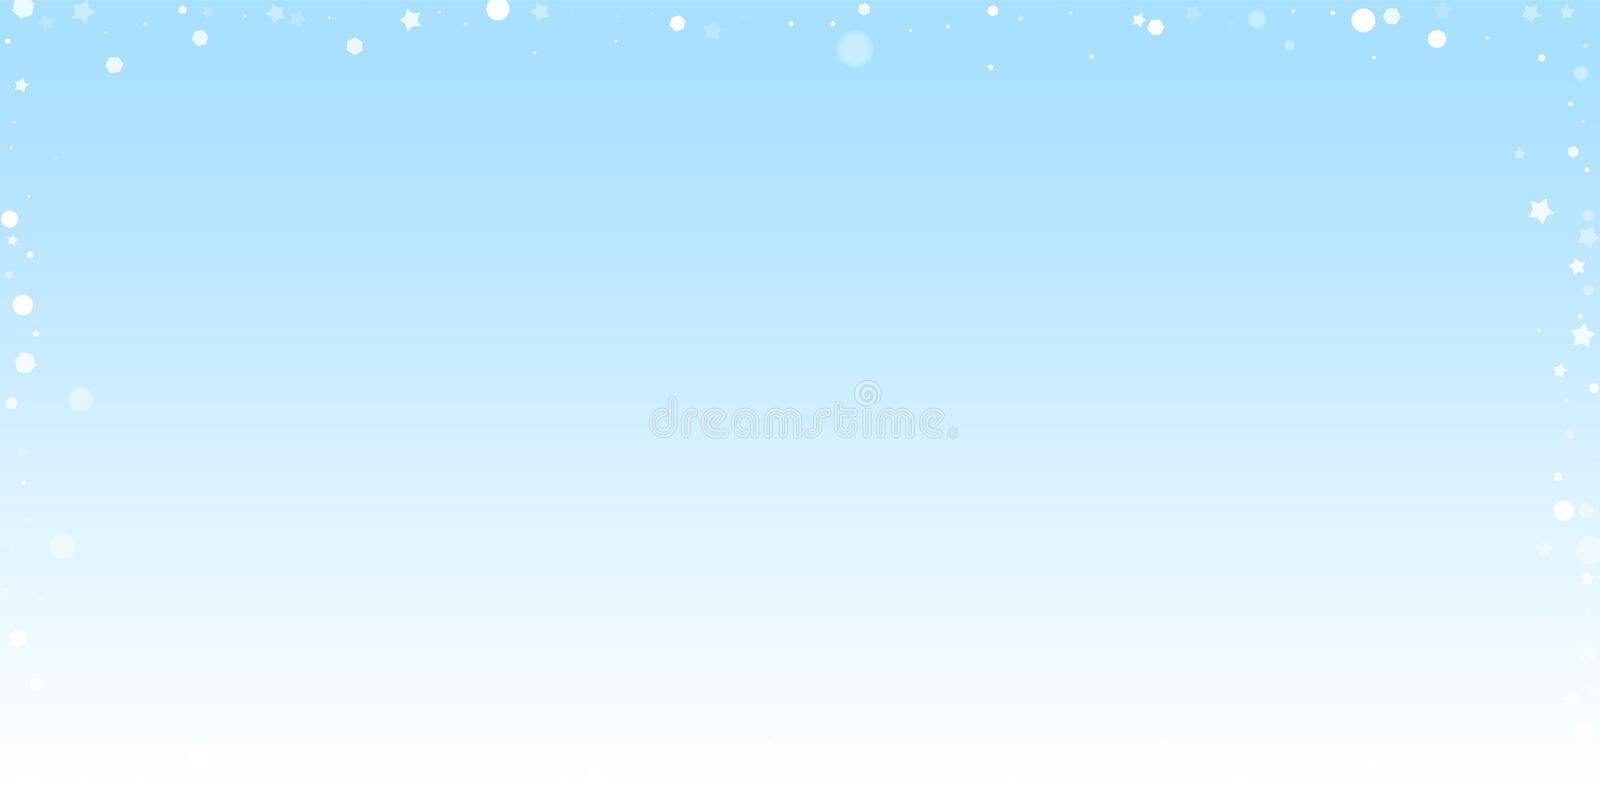 Magic stars random Christmas background. Subtle fl. Ying snow flakes and stars on winter sky background. Awesome winter silver snowflake overlay template royalty free illustration